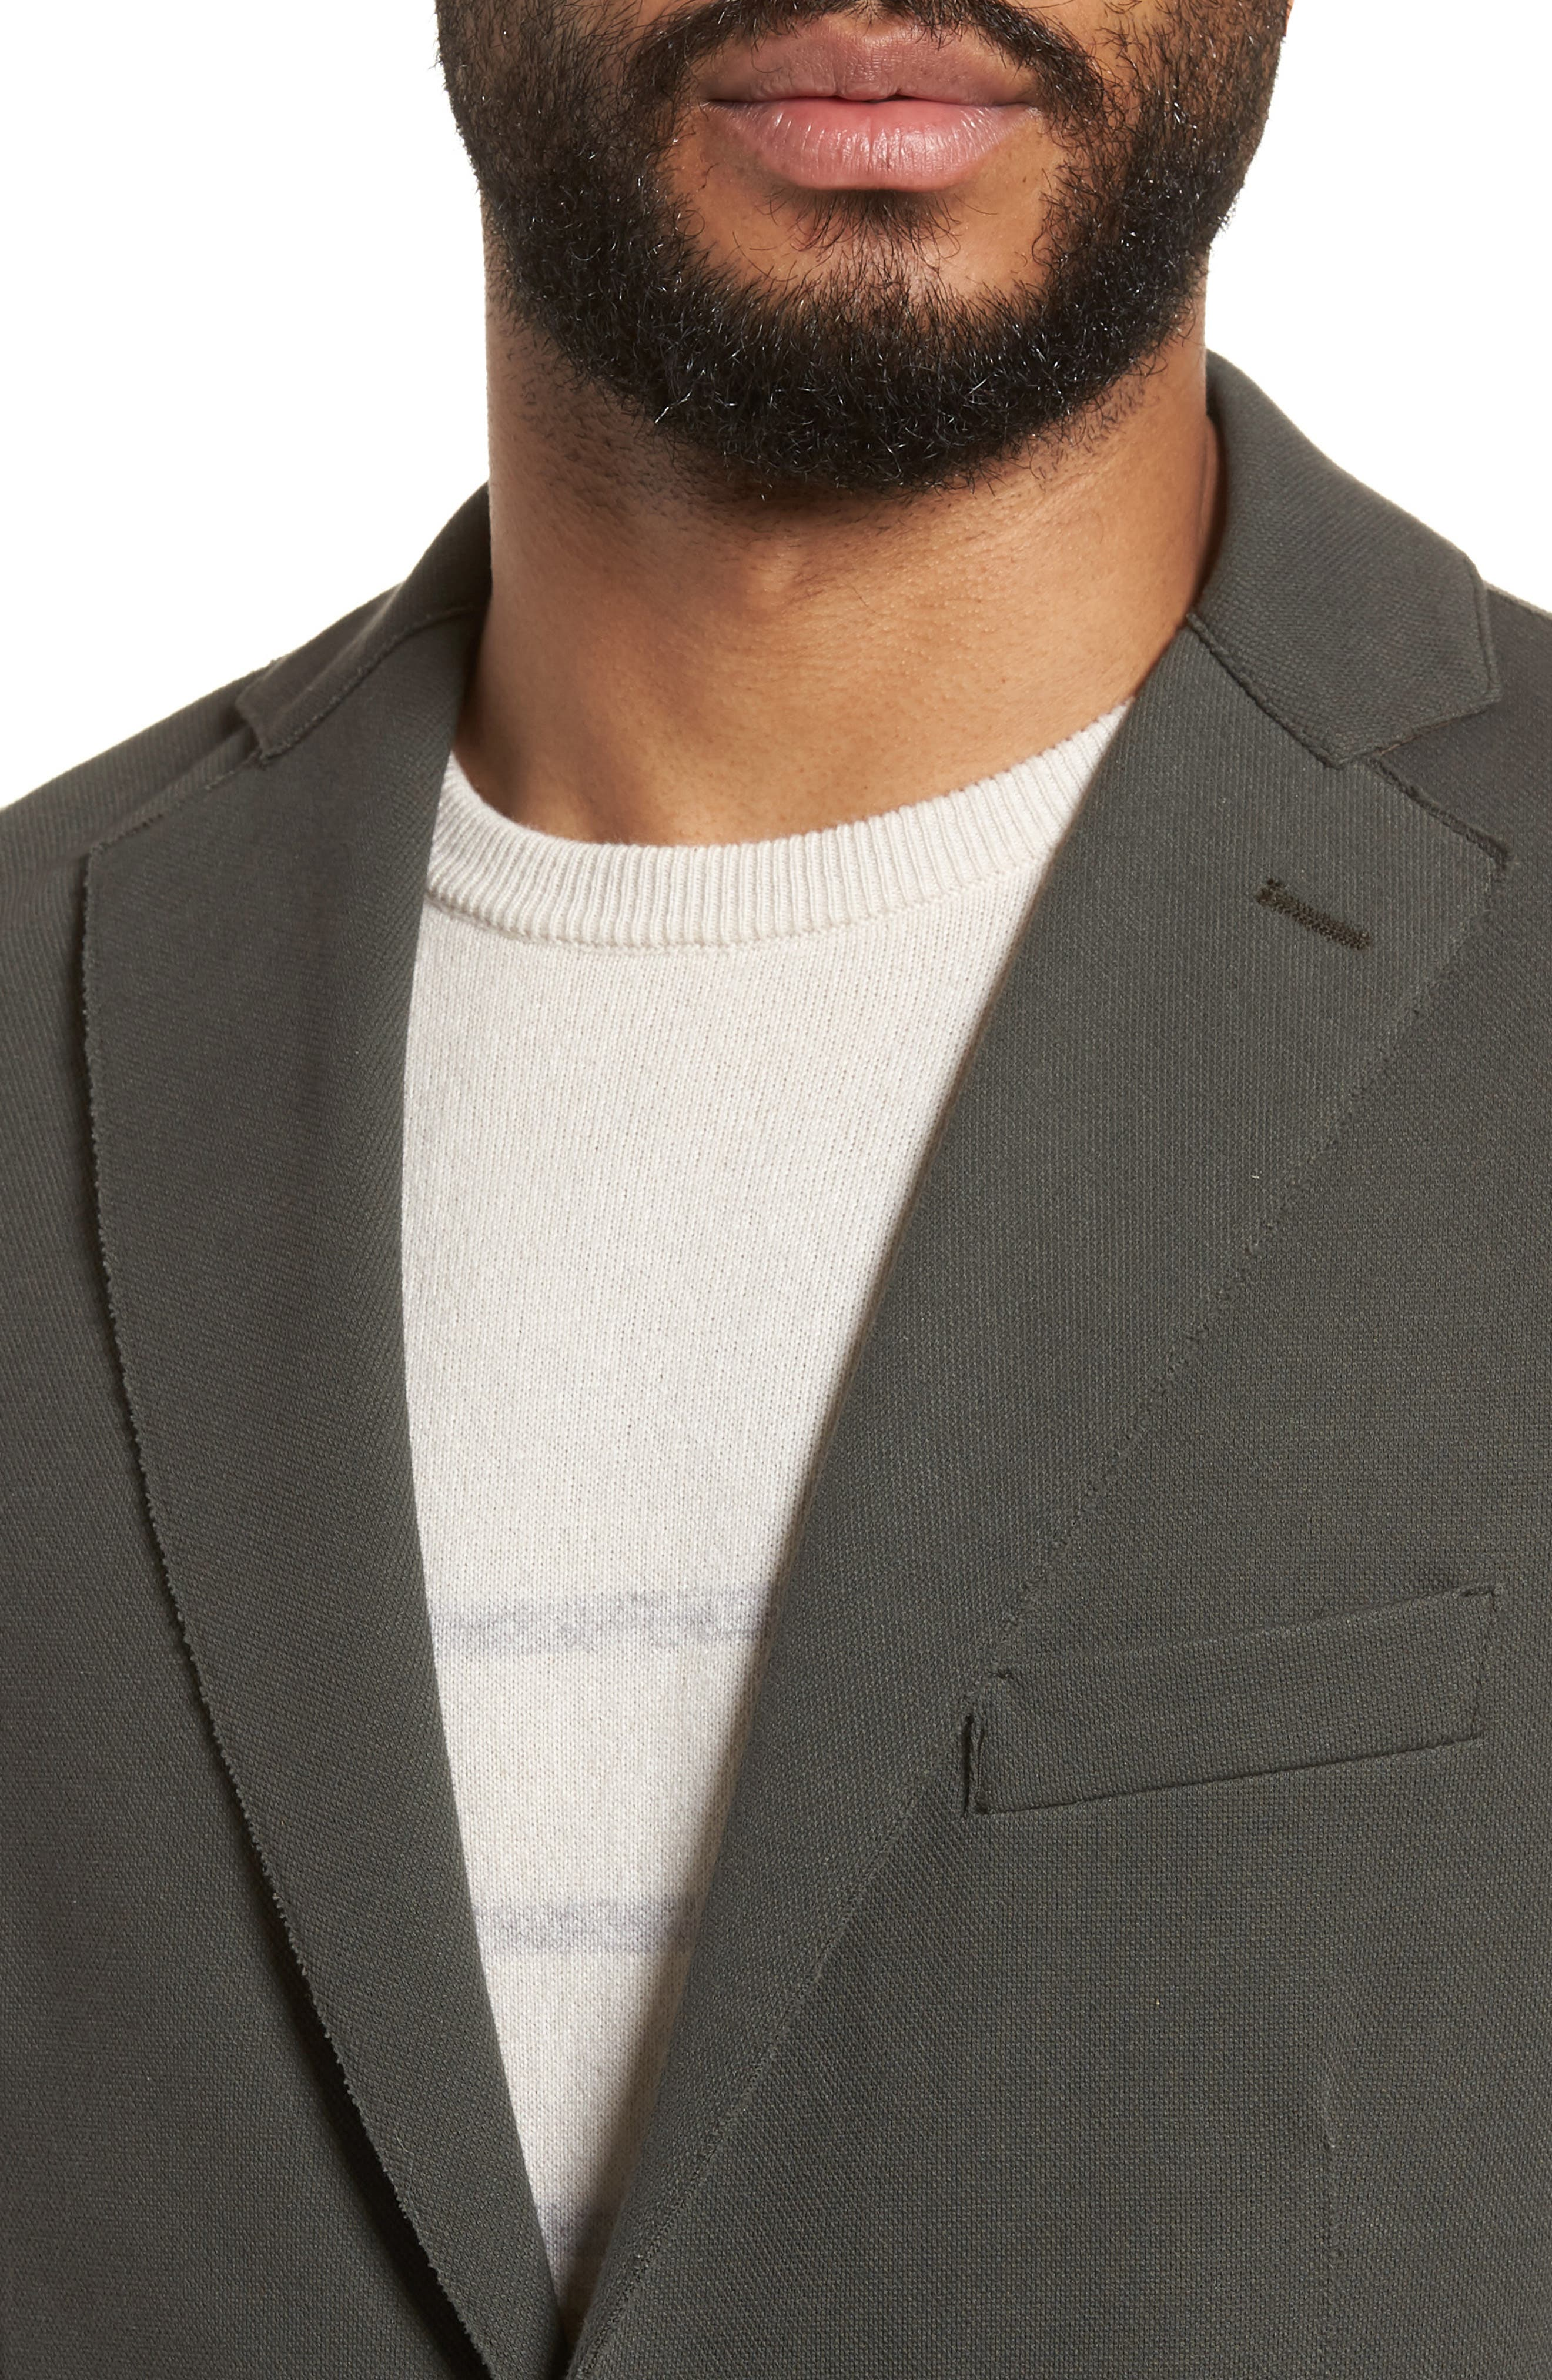 Trim Fit Laser Cut Piqué Jacket,                             Alternate thumbnail 4, color,                             328